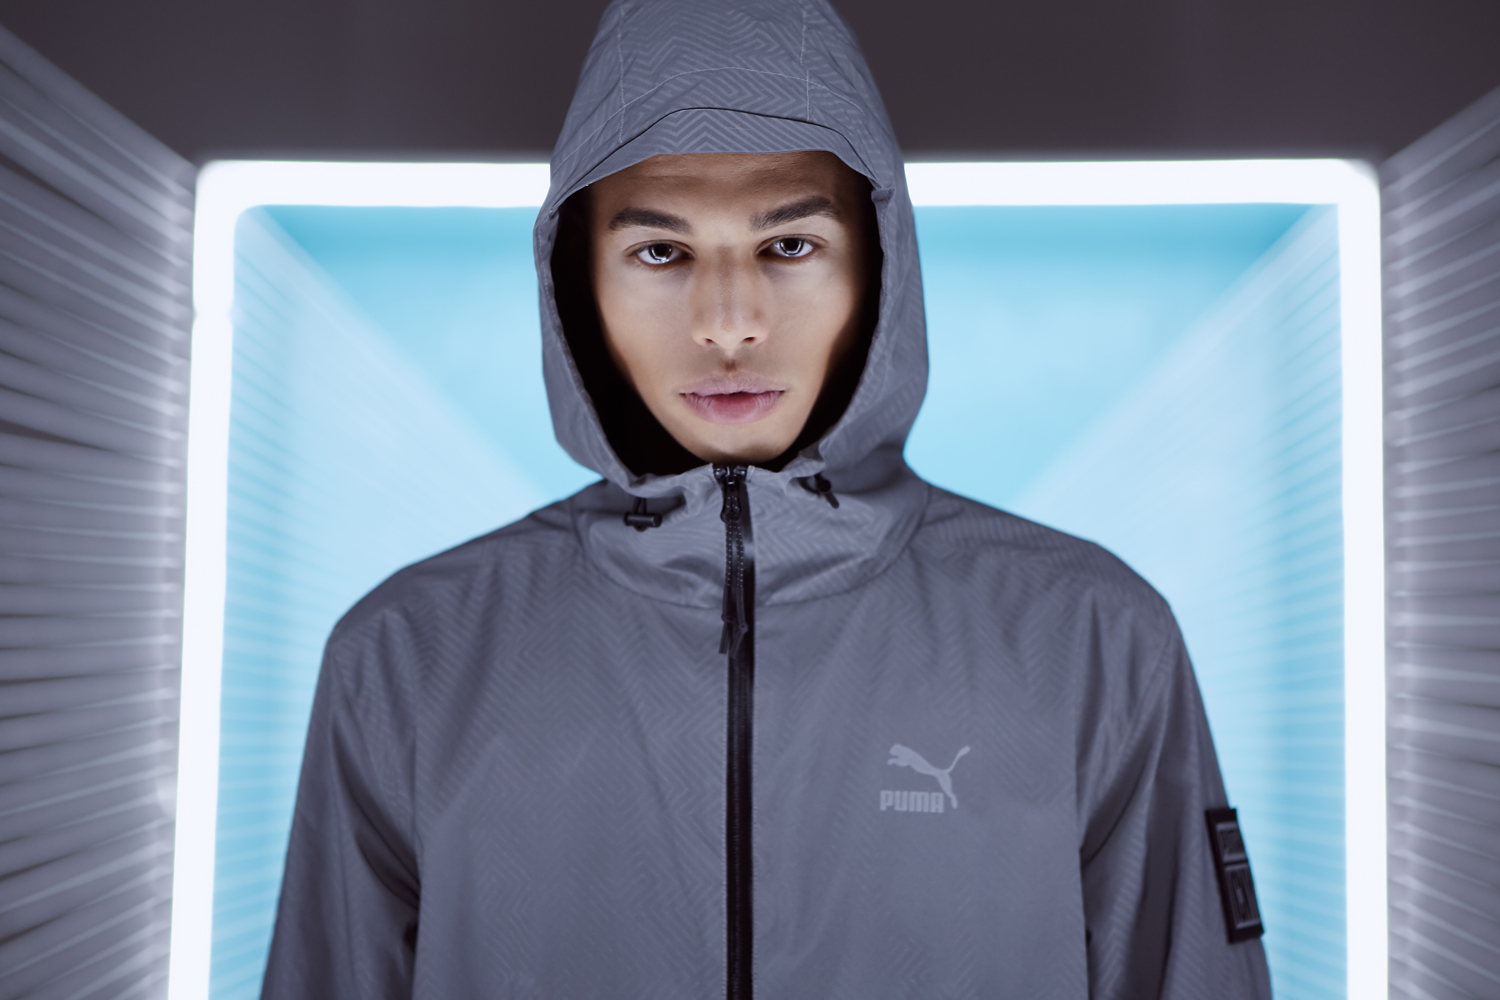 PUMA x ICNY Fall/Winter 2015 Collection